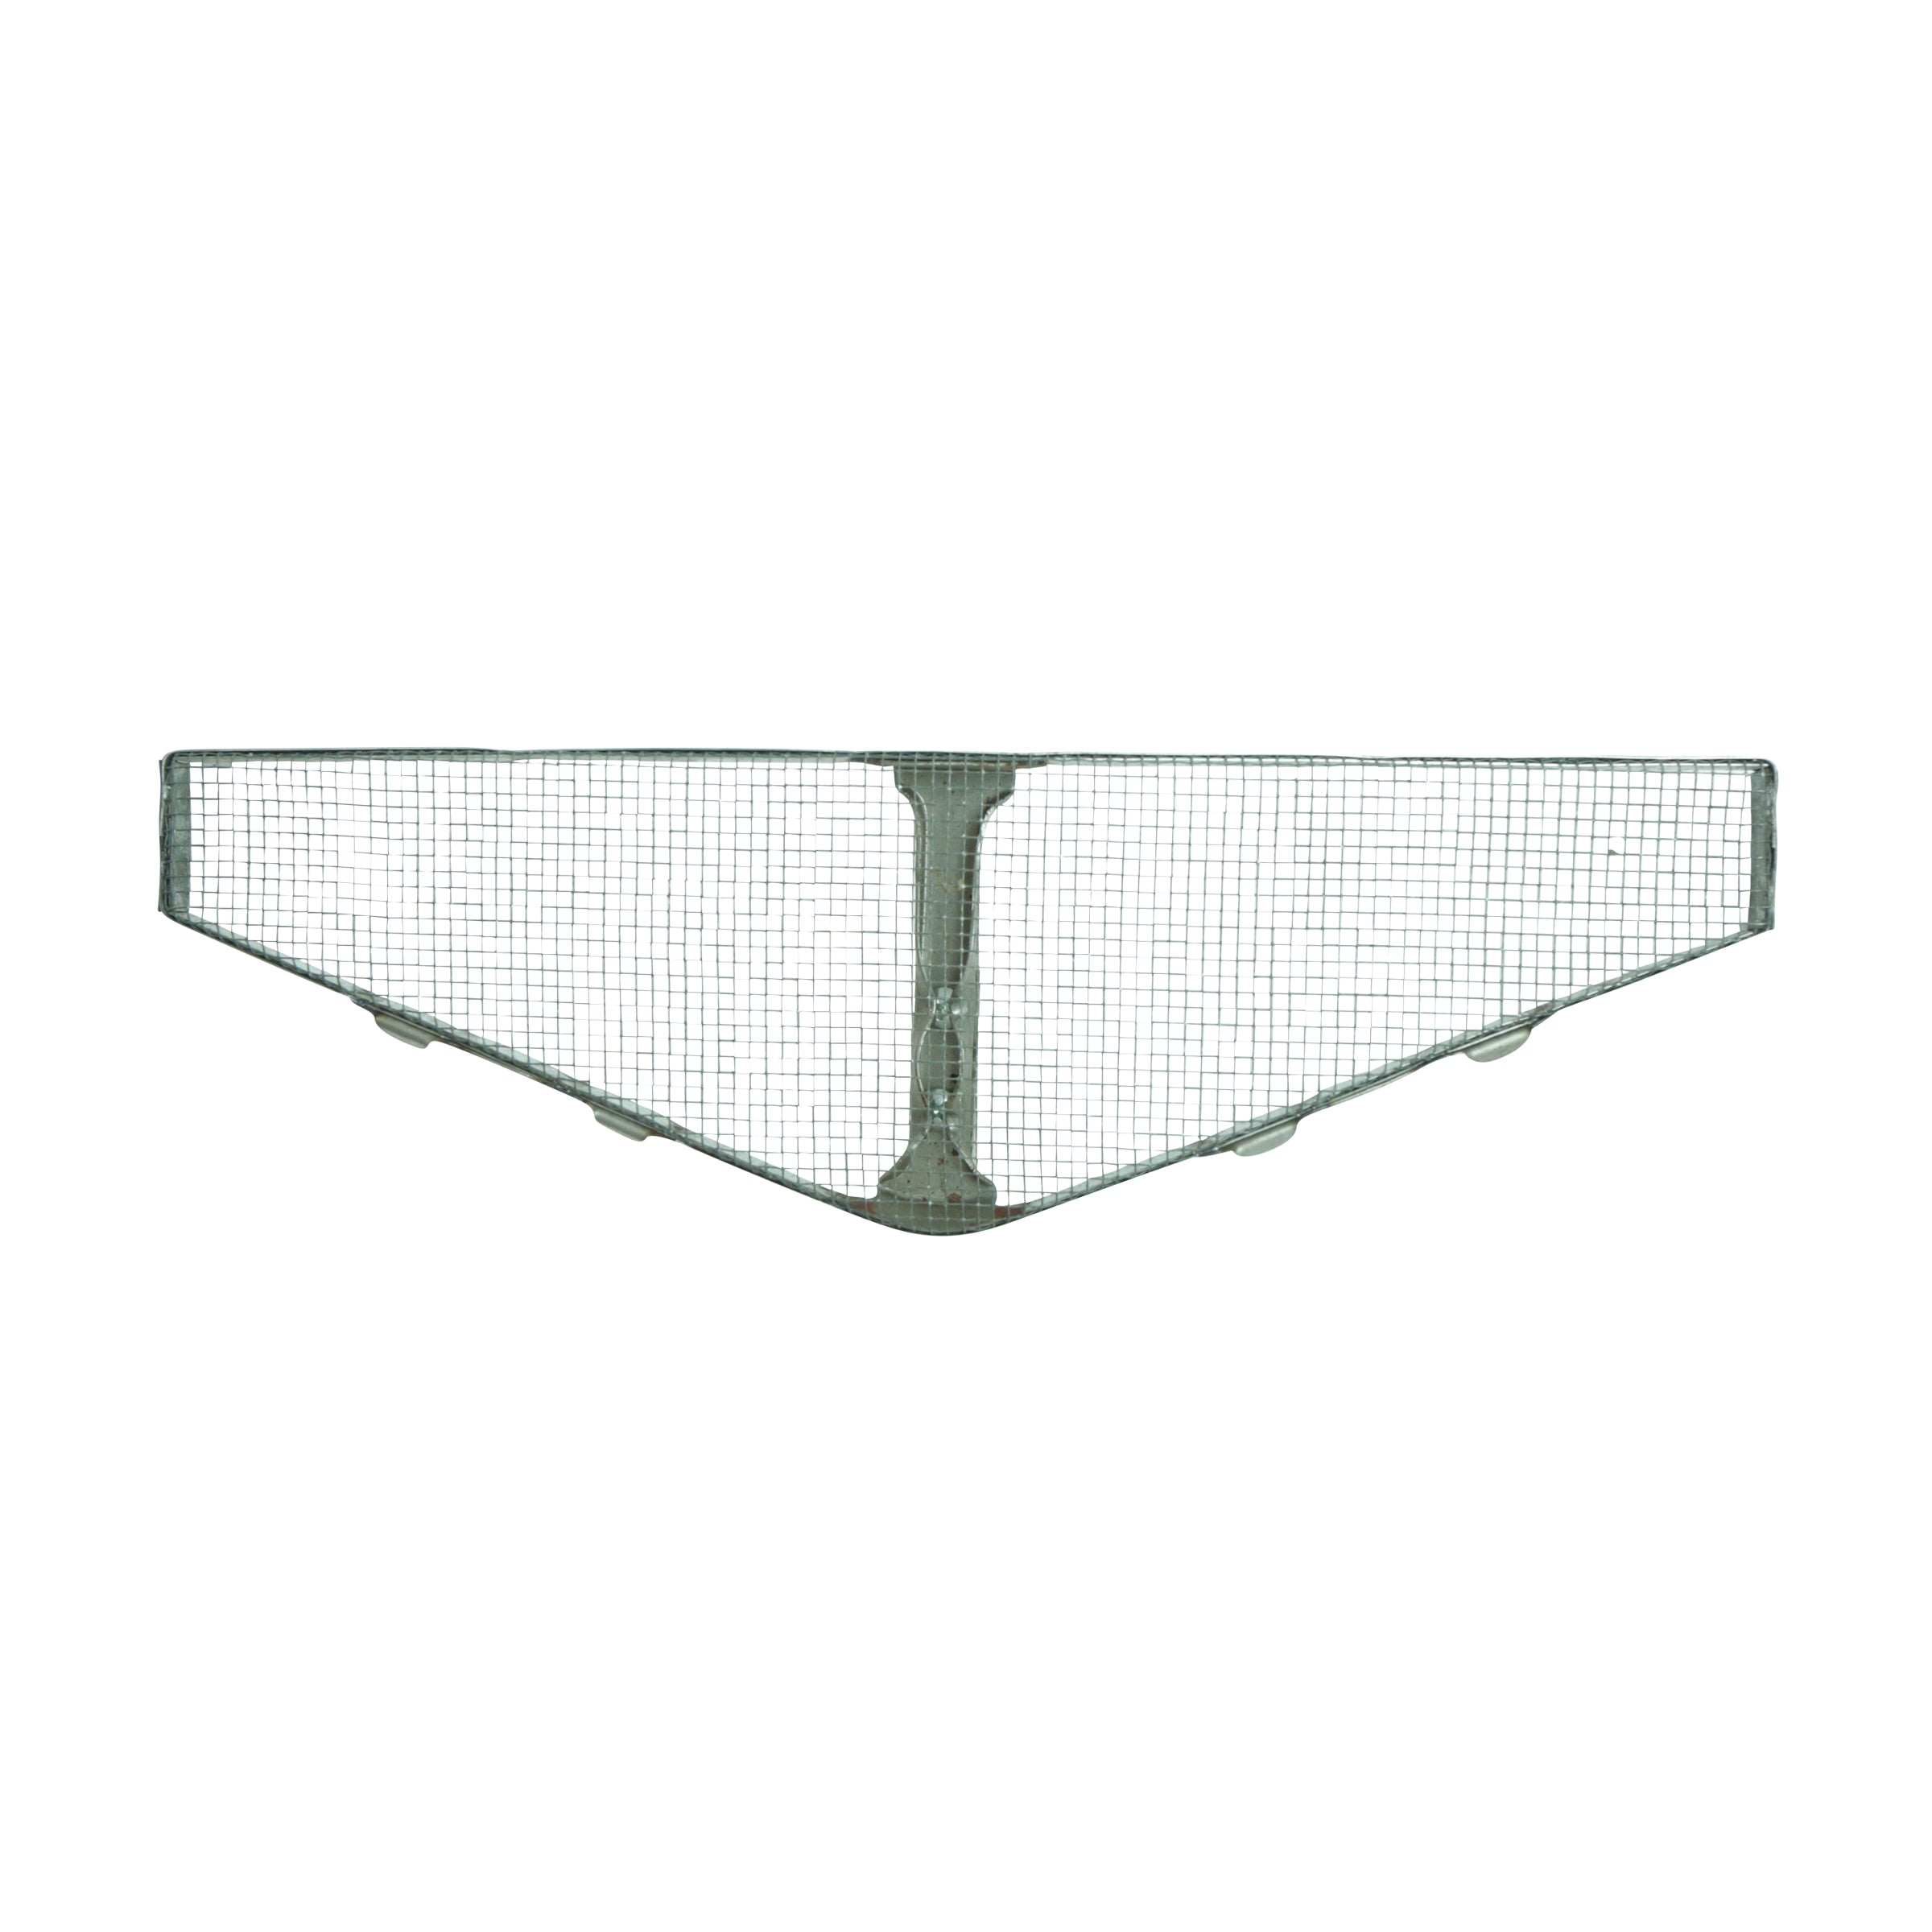 Cowl Vent Screen • 1933-34 Ford Passenger & 1935-36 Ford Pickup